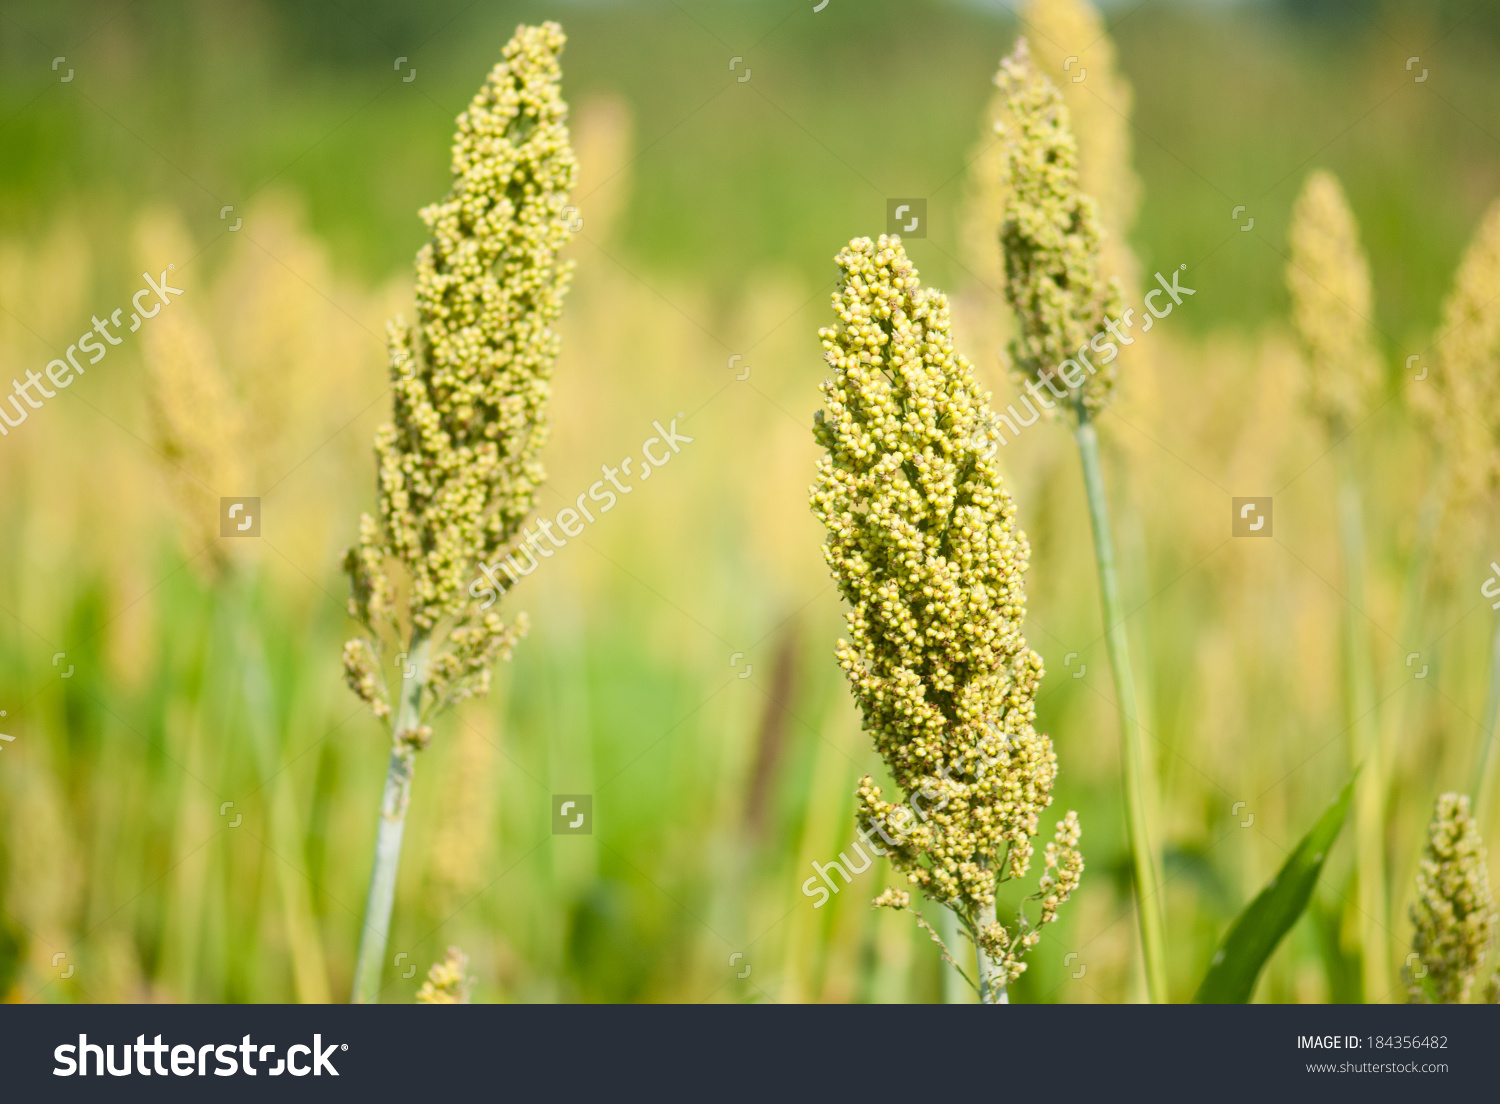 Sorghum Jowar Crop Closeup Rural Village Stock Photo 184356482.